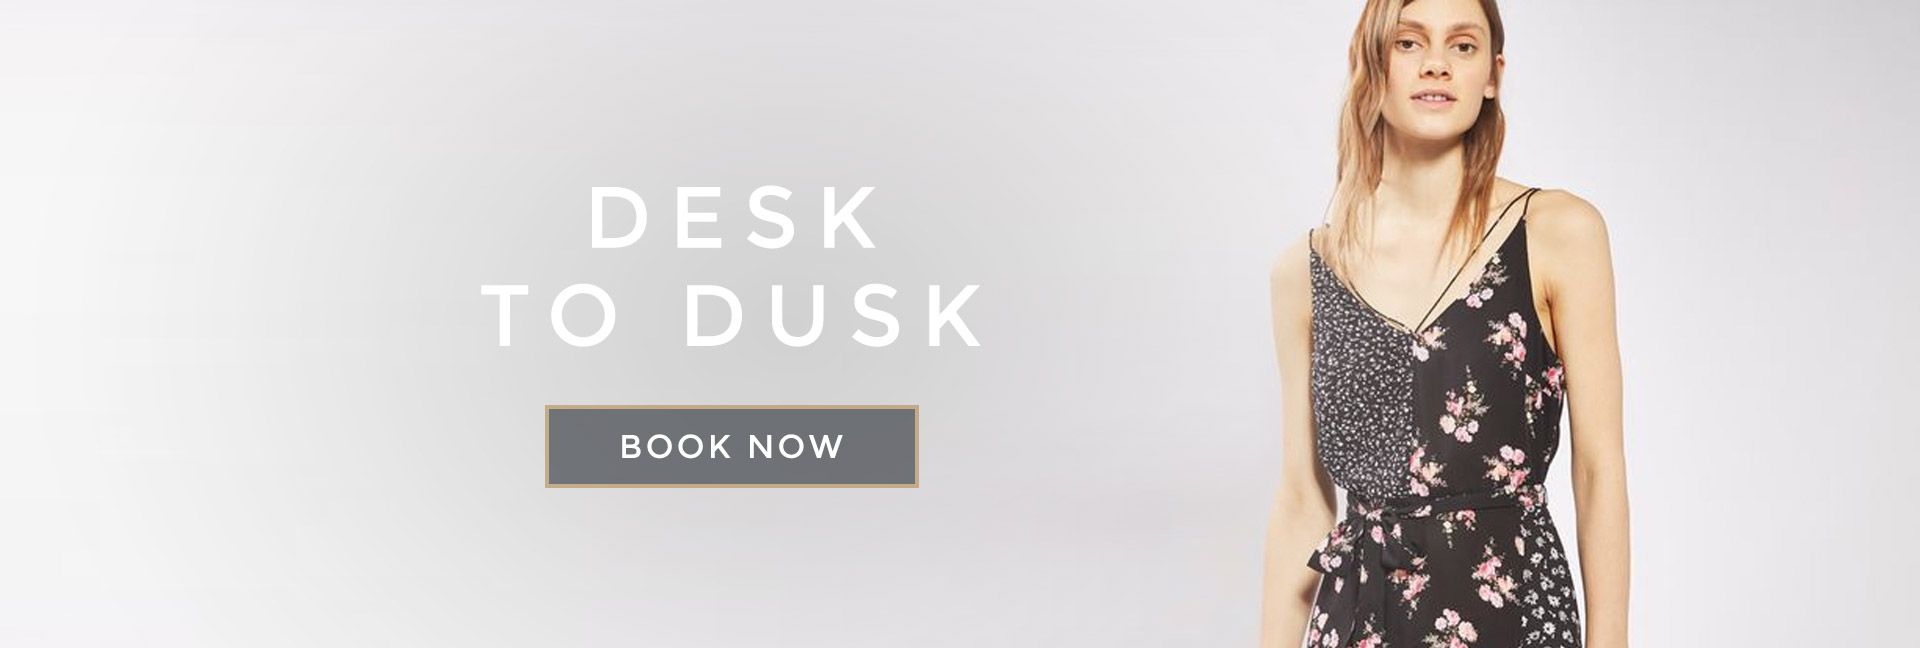 Desk to Dusk at All Bar One Harrogate - Book your table